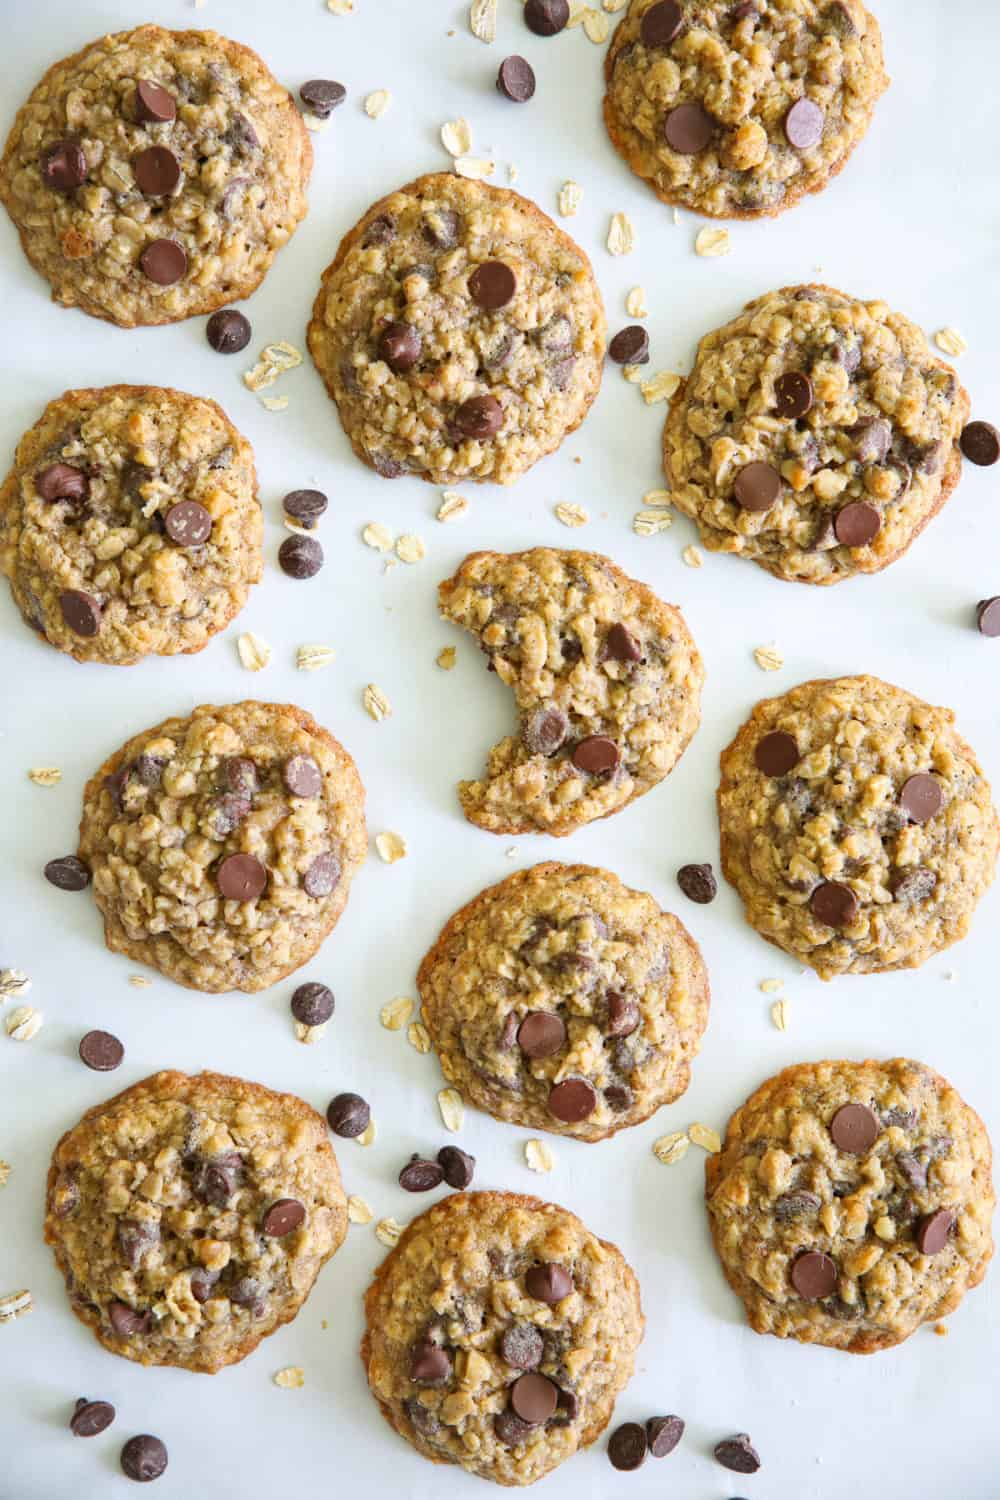 an overhead image of 12 baked oatmeal chocolate chip cookies scattered on white parchment paper with oatmeal and chocolate chips around them